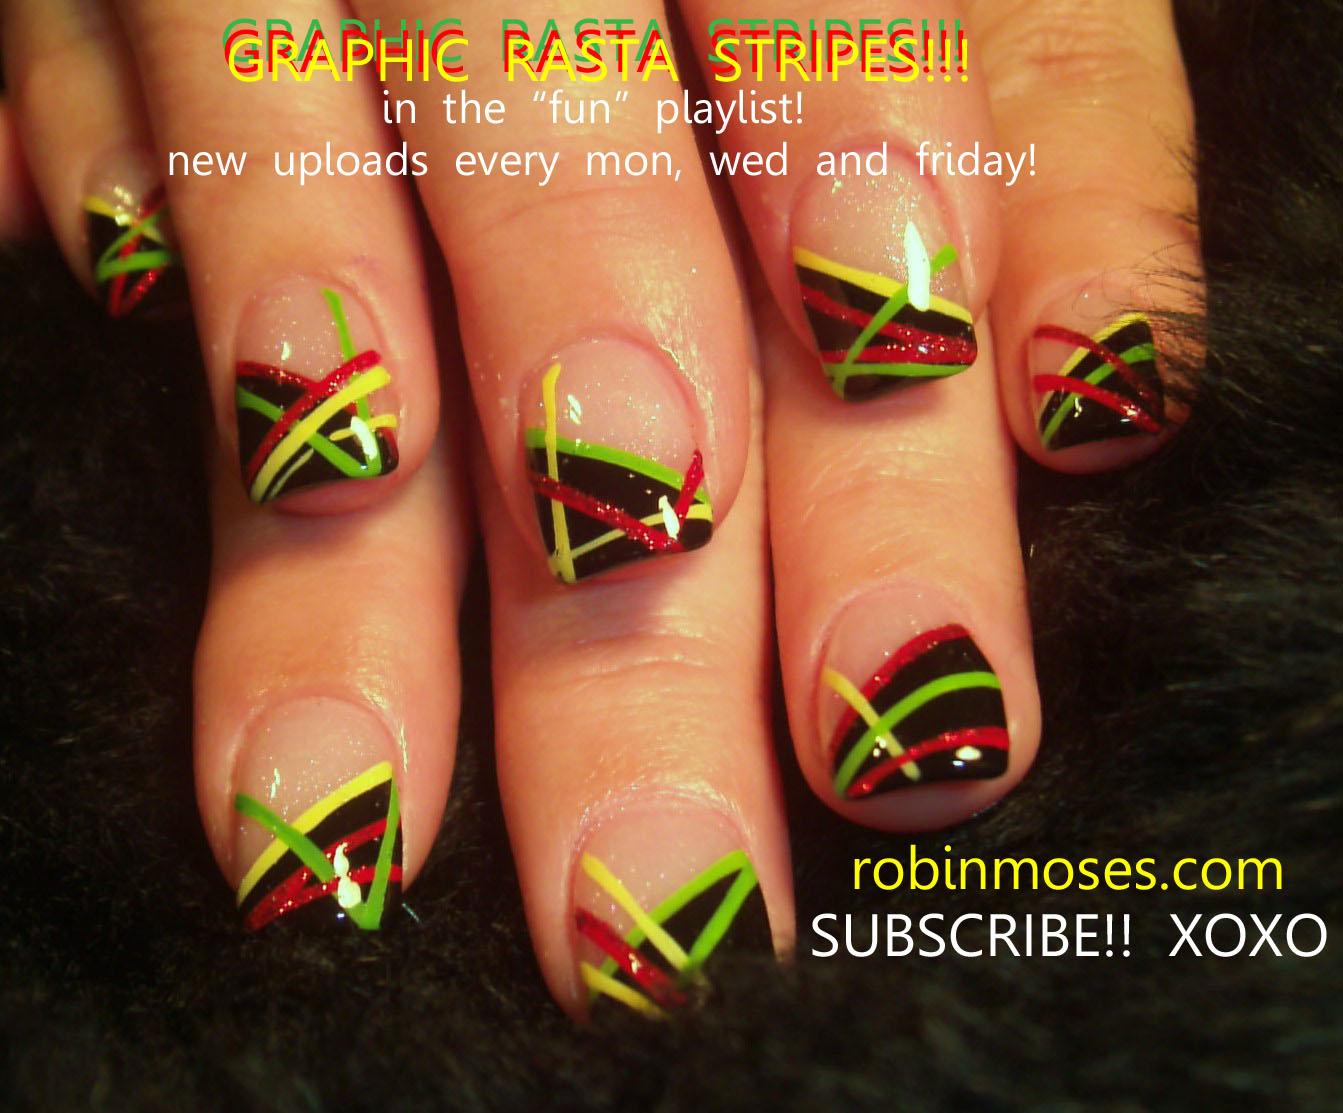 Tribal Nails Black And Gray Rasta Reggae Easy Ufc Newspaper Vintage With Flowers